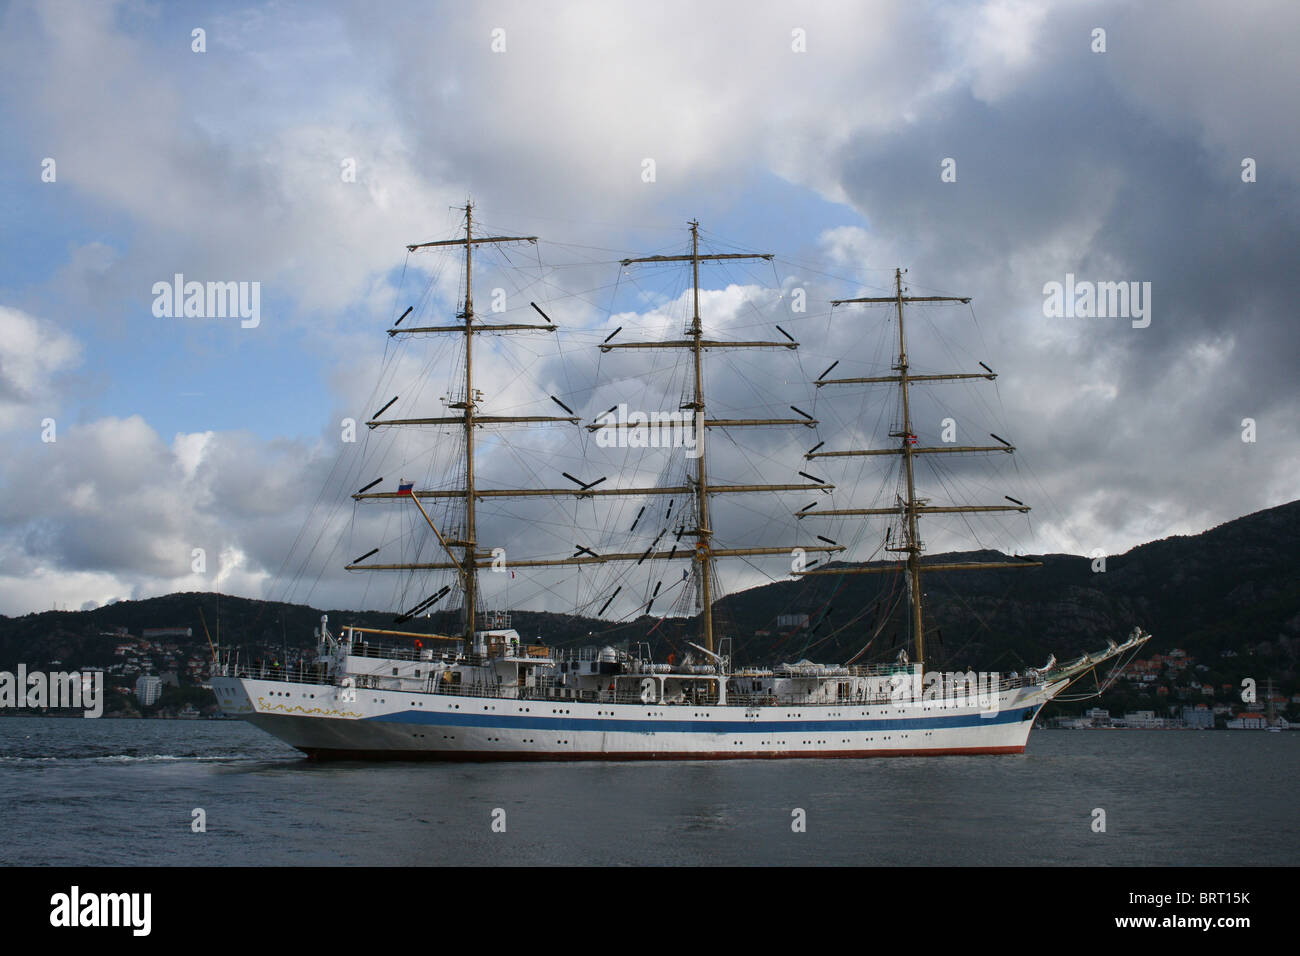 Mir, The Tall Ships Races 2008, Bergen - Stock Image